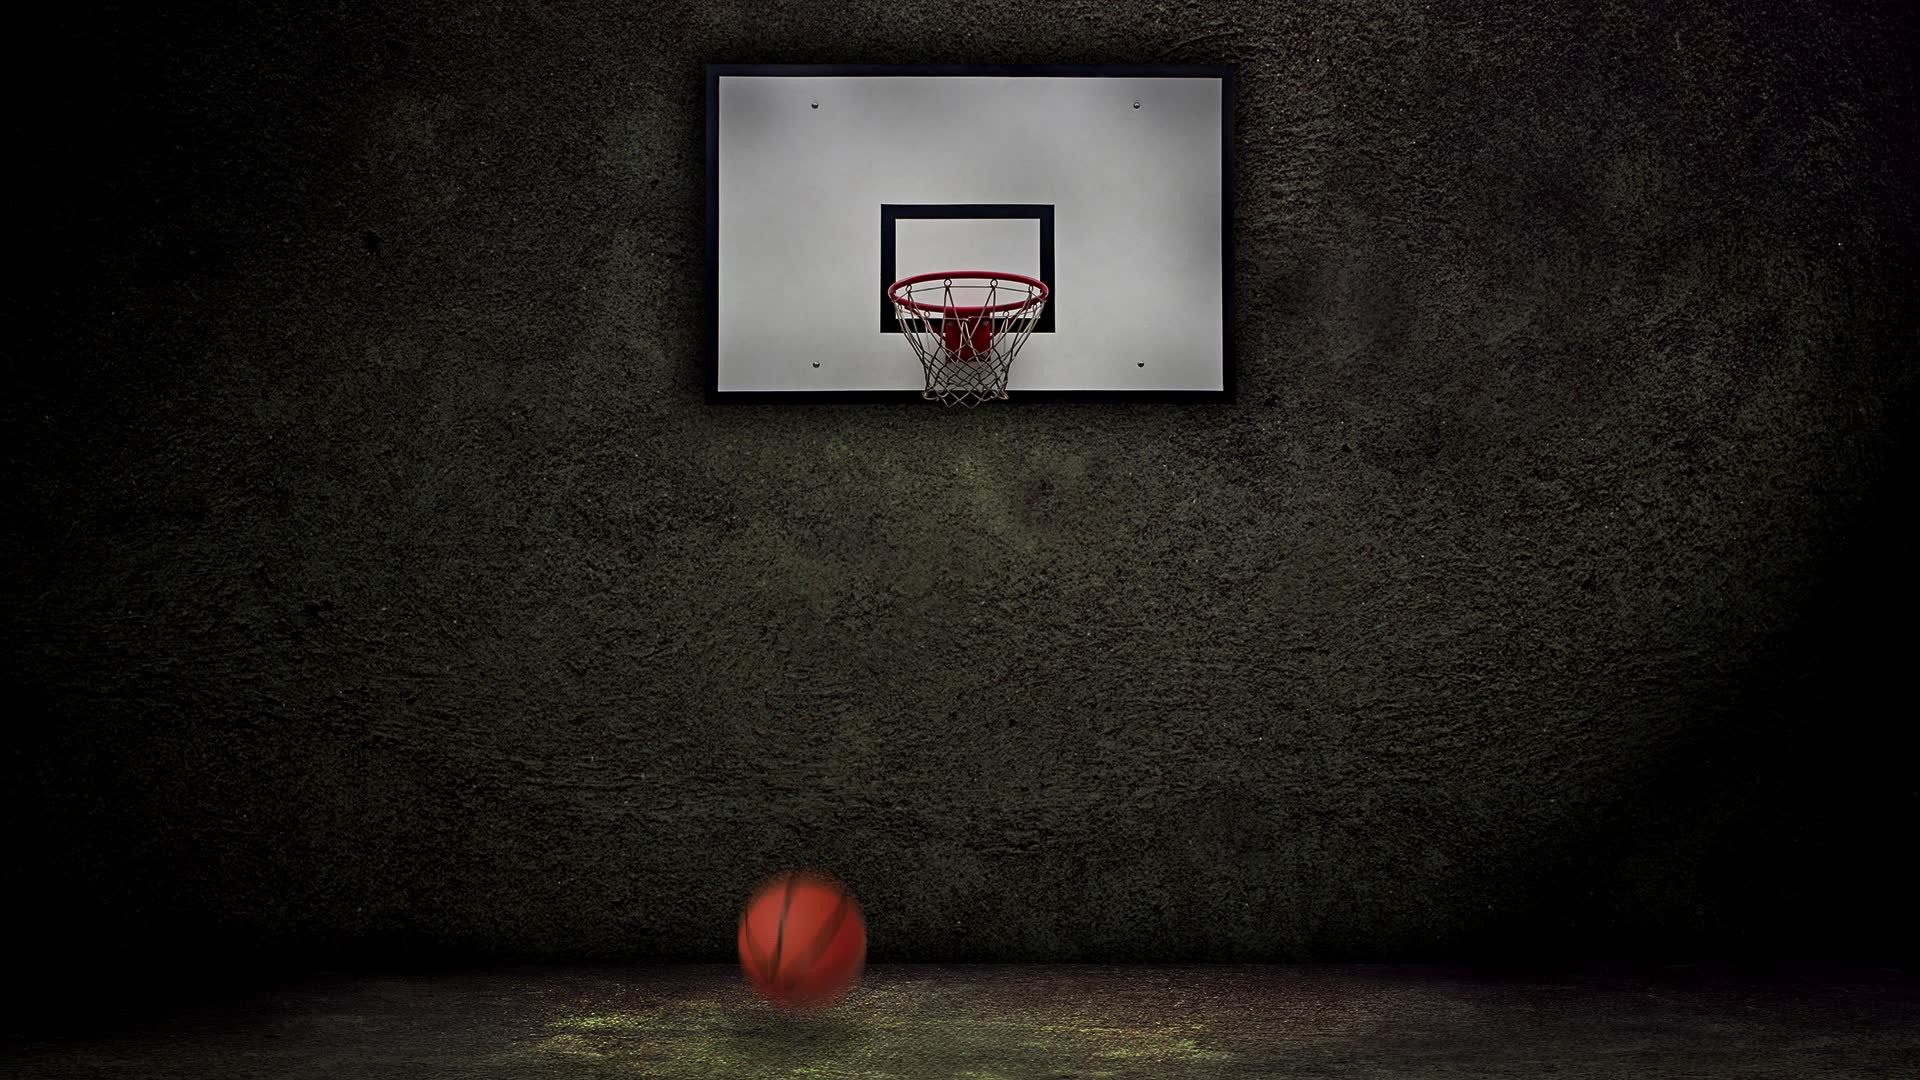 Cool Nba Wallpapers For Iphone 65 Images: Cool Basketball Wallpapers For IPhone (60+ Images